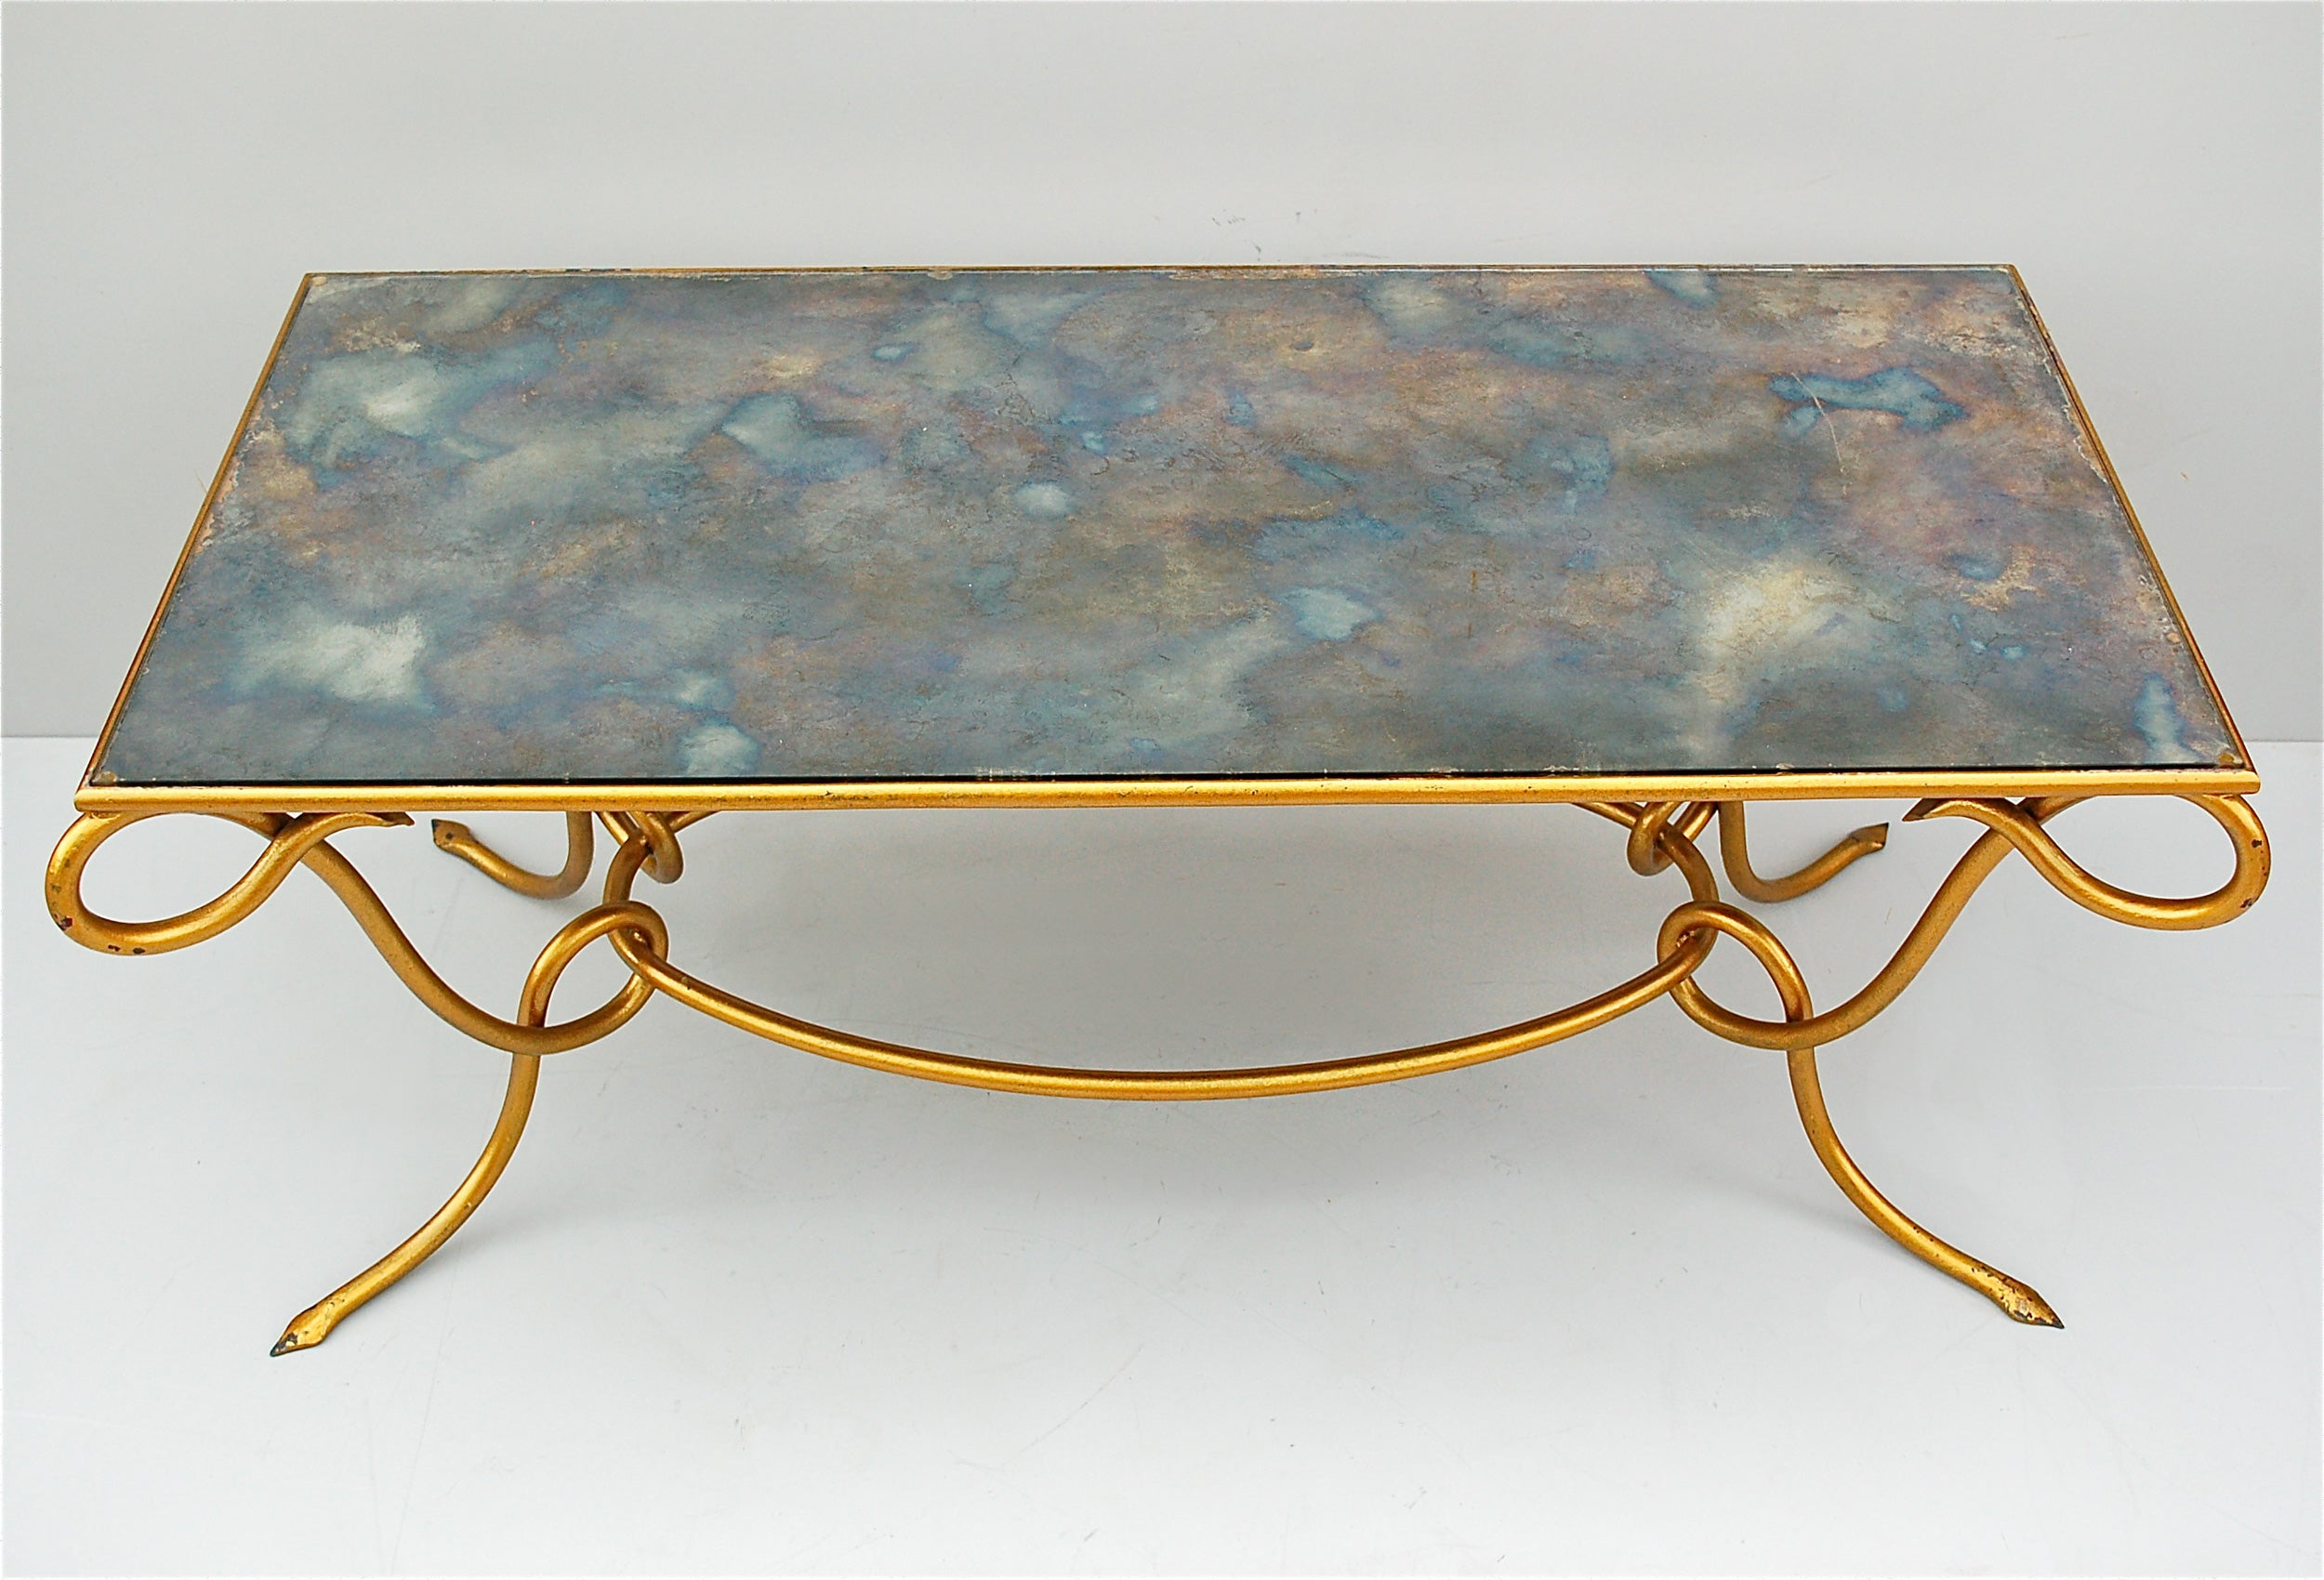 Metal Coffee Table Gilt Coffee Table With Original Iridescent Mirrored Top By René Drouet